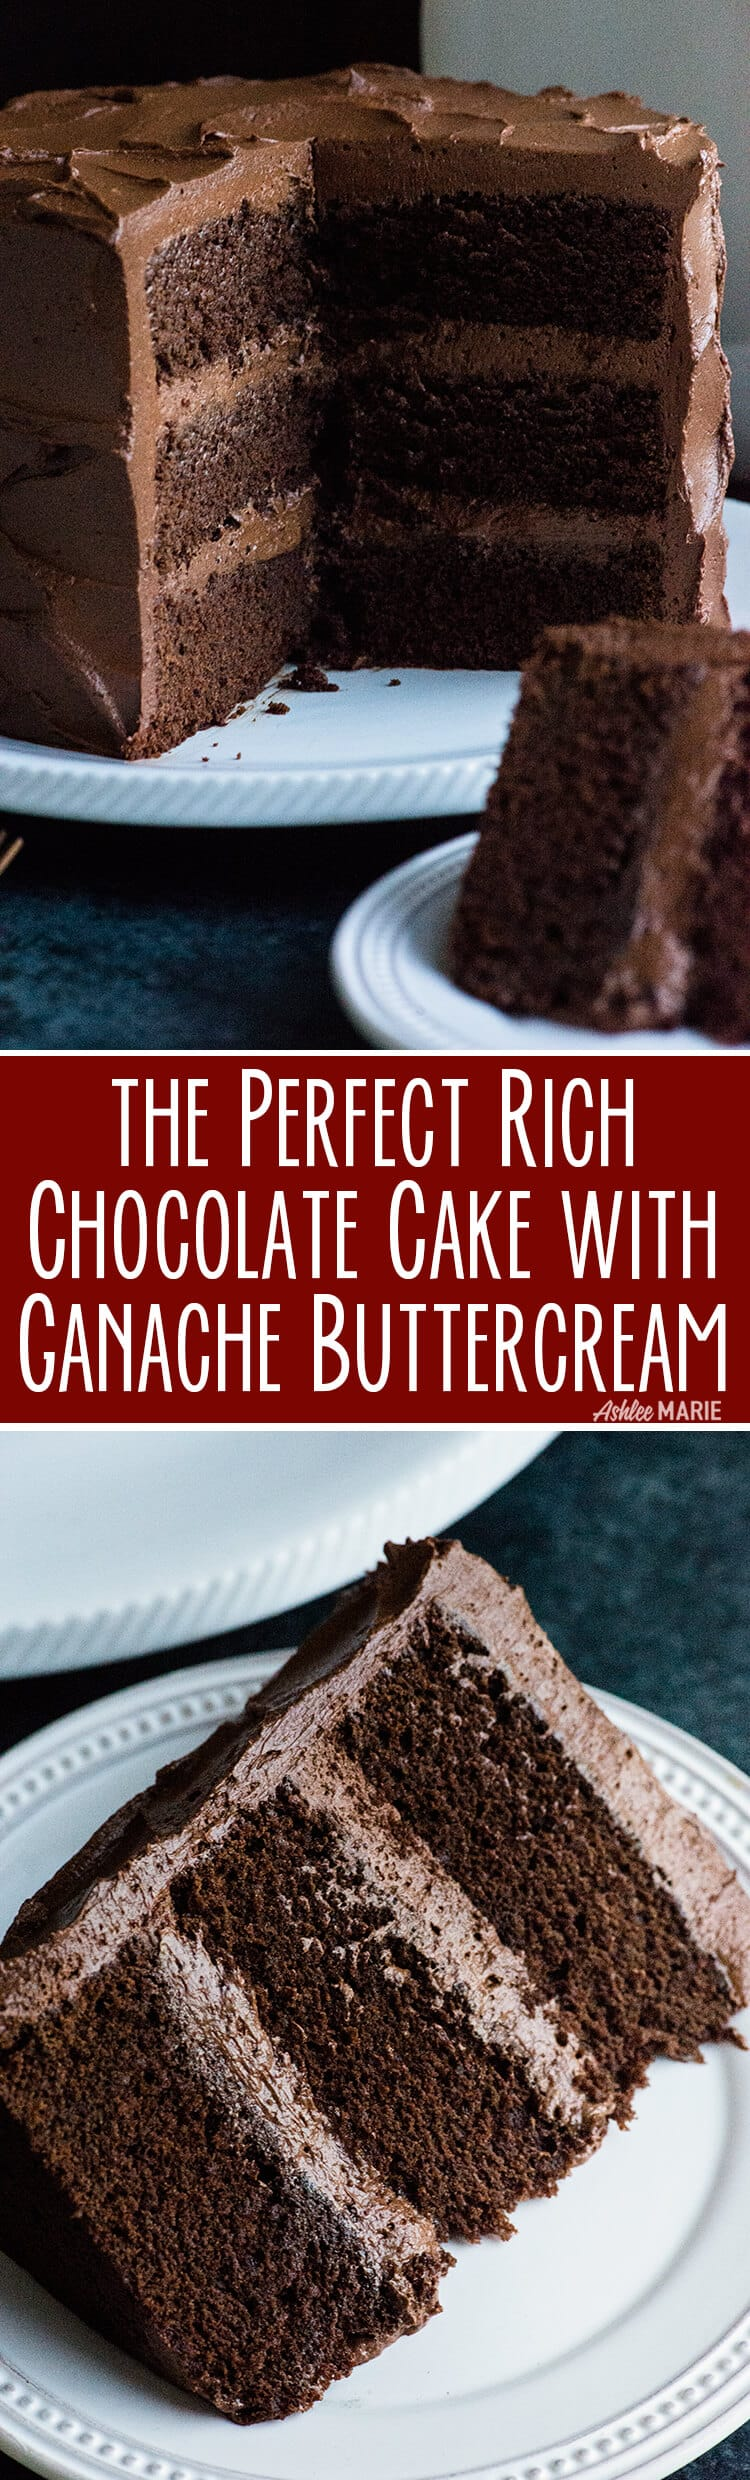 The perfect chocolate cake - from a cake decorator - rich, decadent, moist - video tutorial